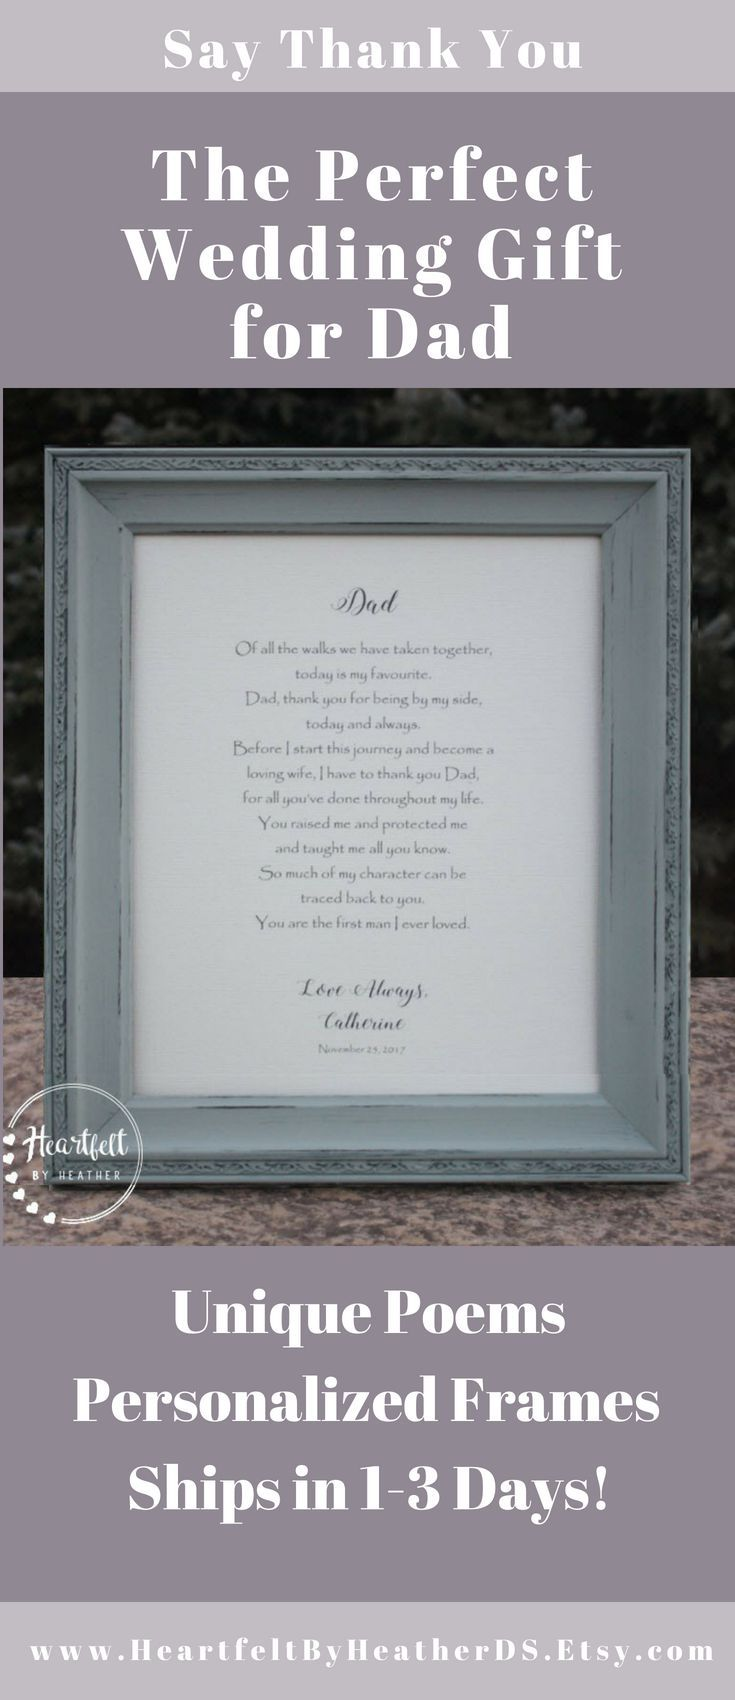 Wedding Gift For Dad Father Of The Bride Gift From Daughter